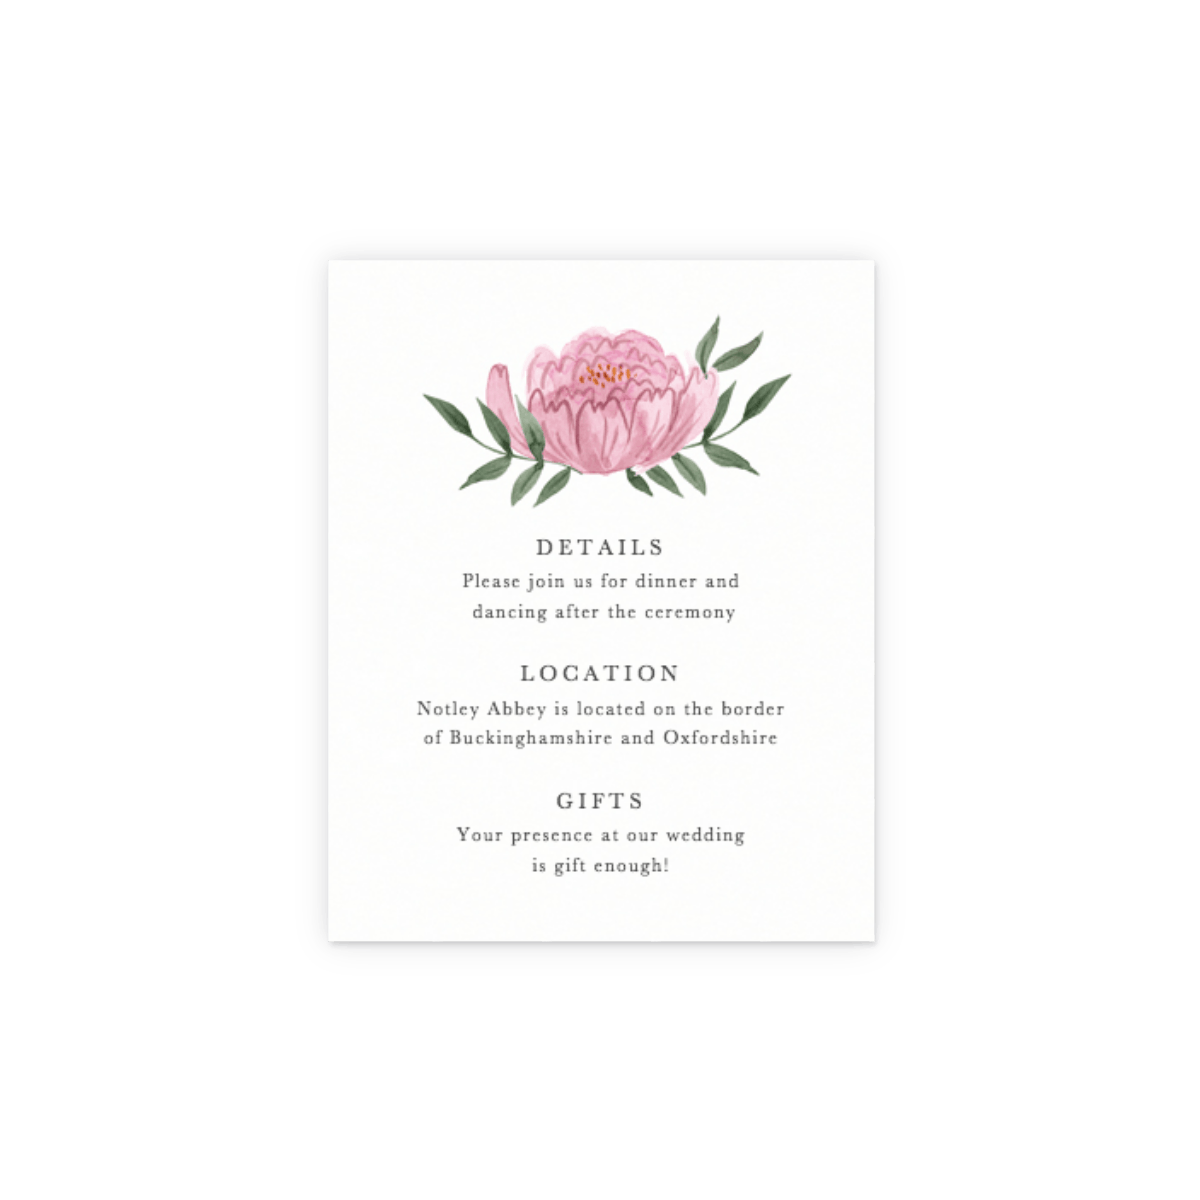 Https%3a%2f%2fwww.papier.com%2fproduct image%2f62967%2f9%2fdusky peonies 14861 info card 1549639912.png?ixlib=rb 1.1